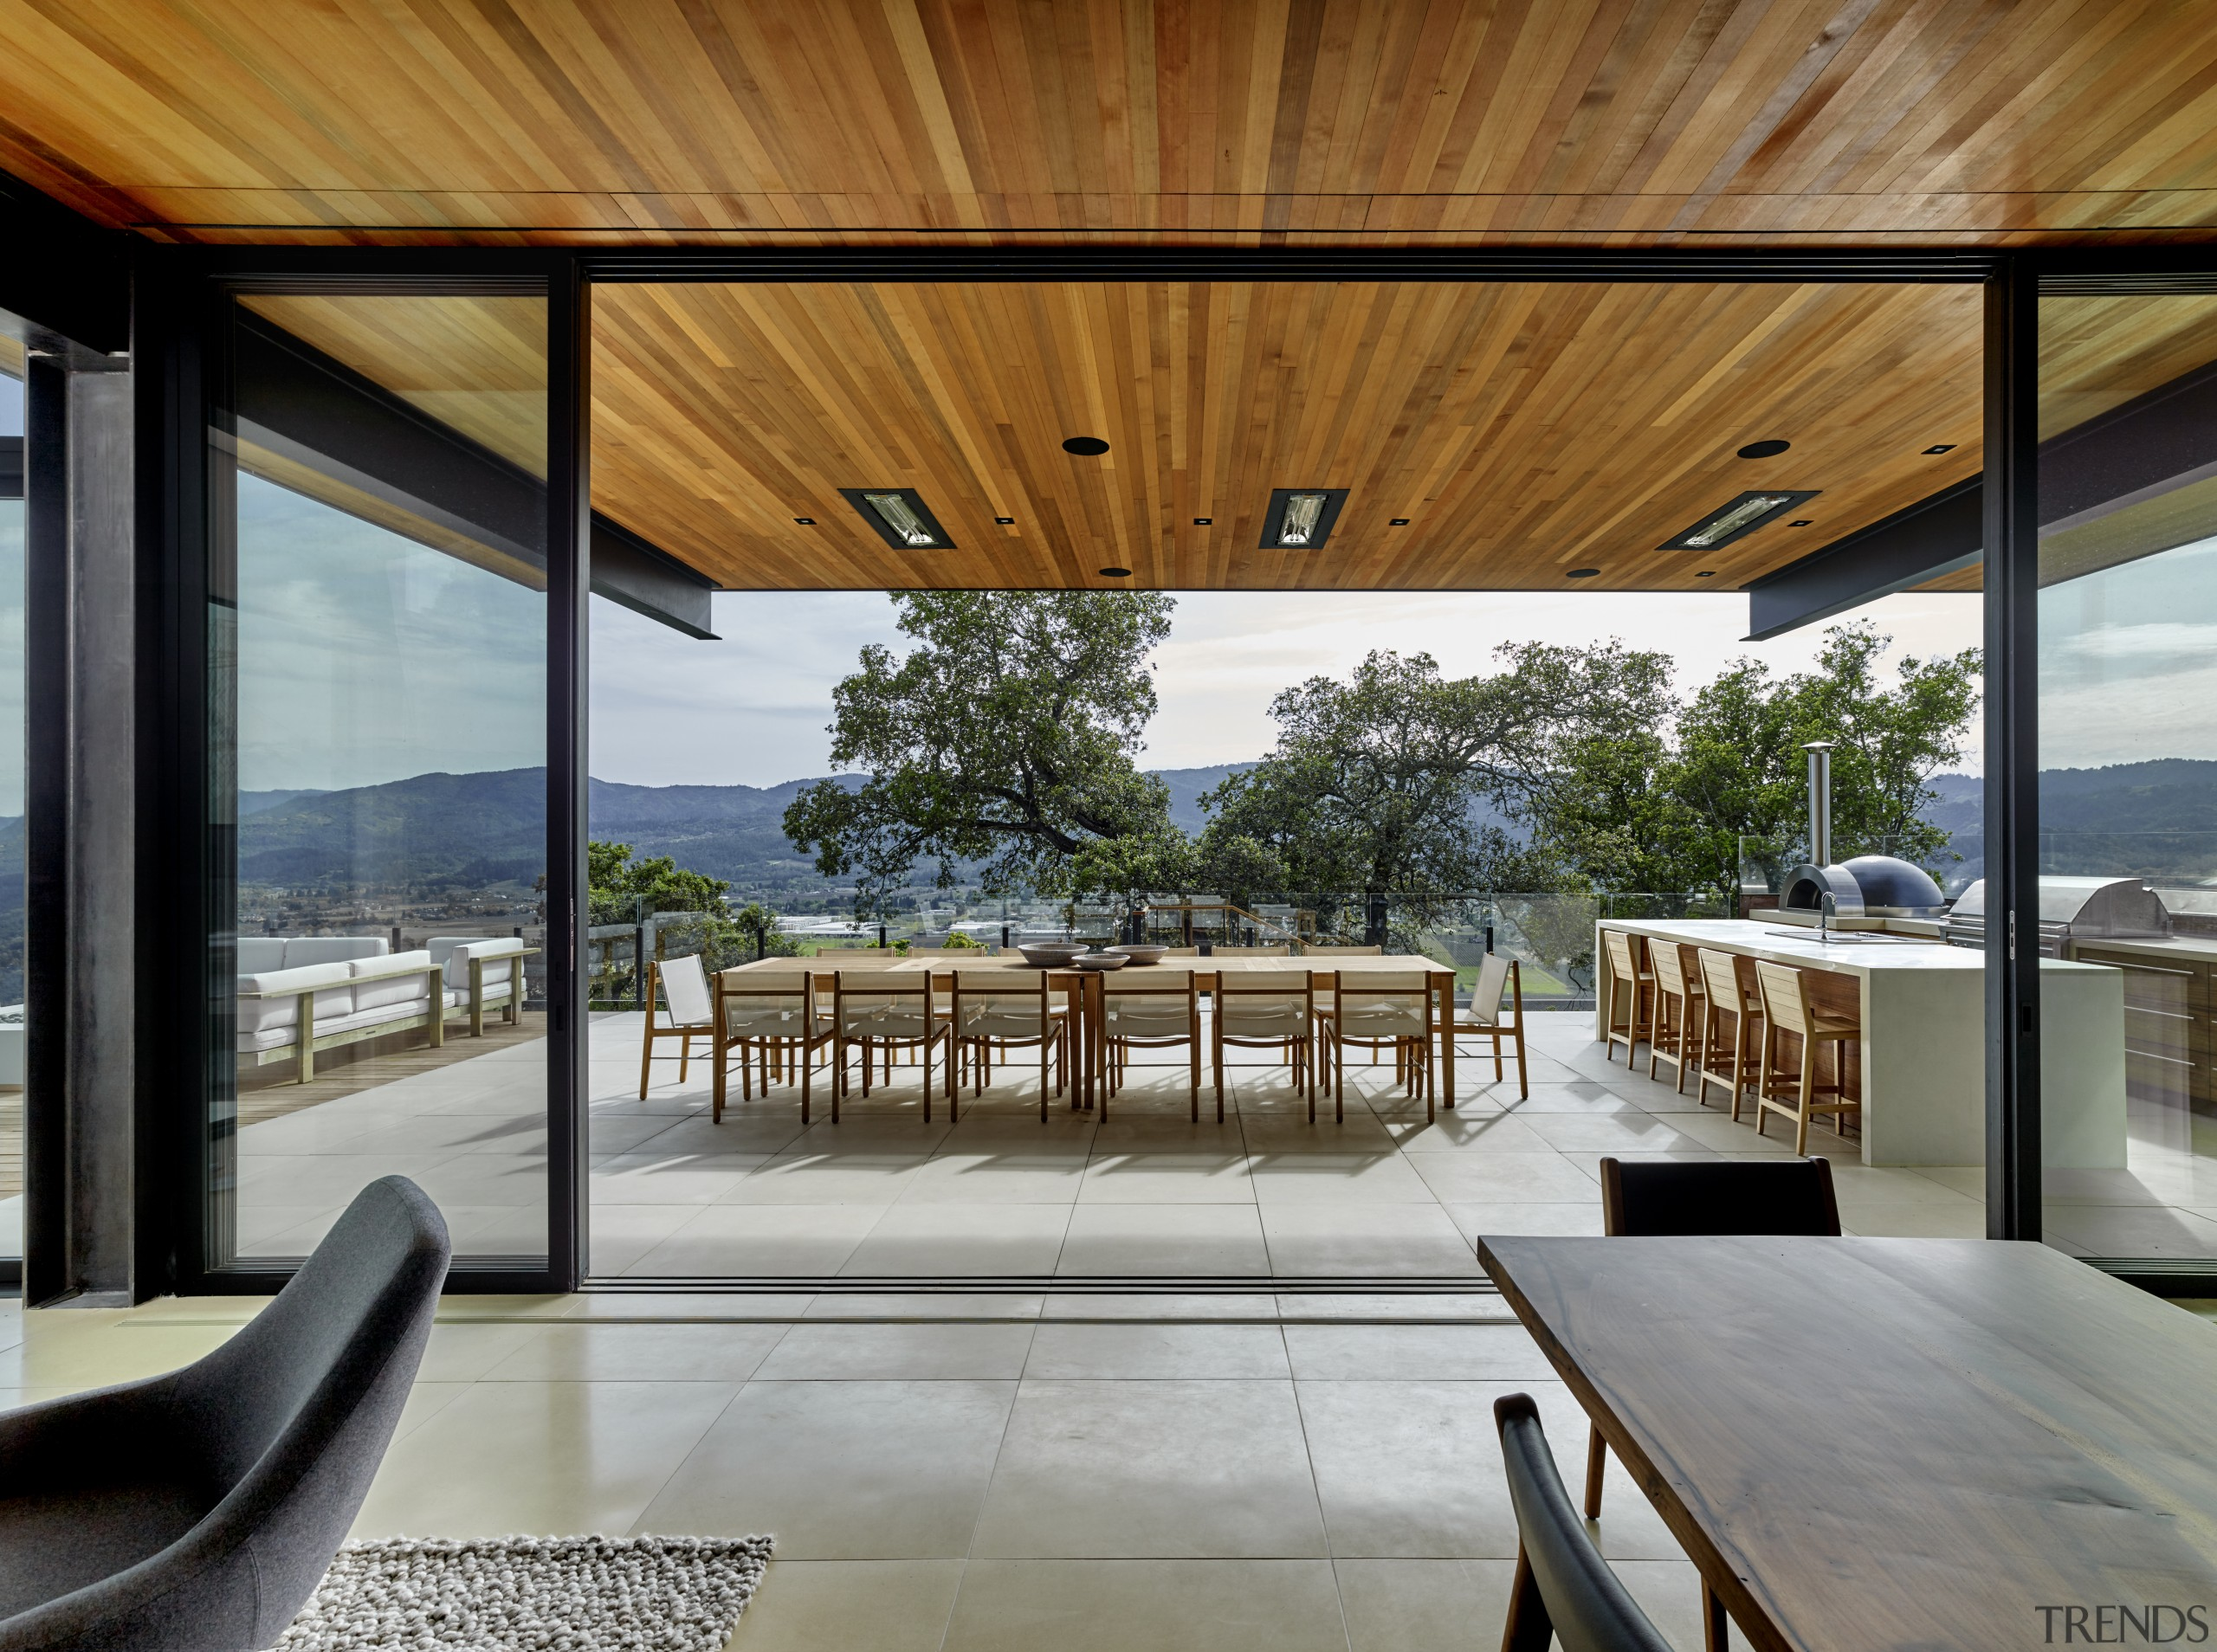 Views across the valley predominate in the living architecture, deck, design, floor, tiles, furniture, home, house, interior design, living room, patio, porch, shade, table, window, wood, tiles,  floor, de Vito Design + construction